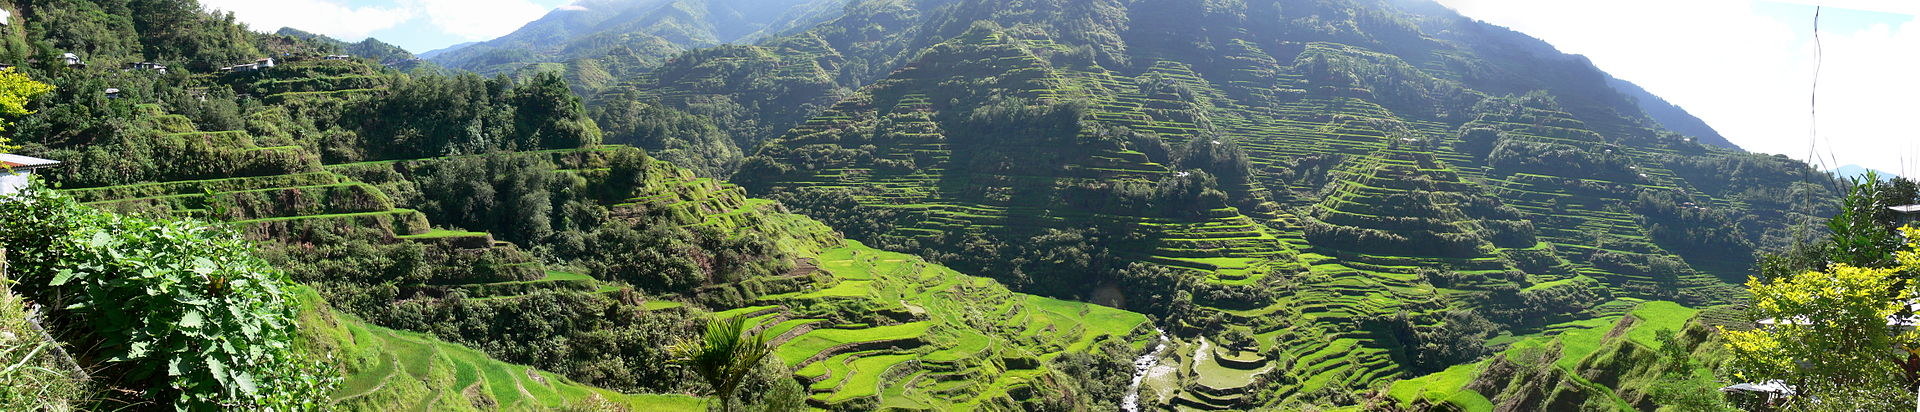 Pana_Banaue_Rice_Terraces.jpg